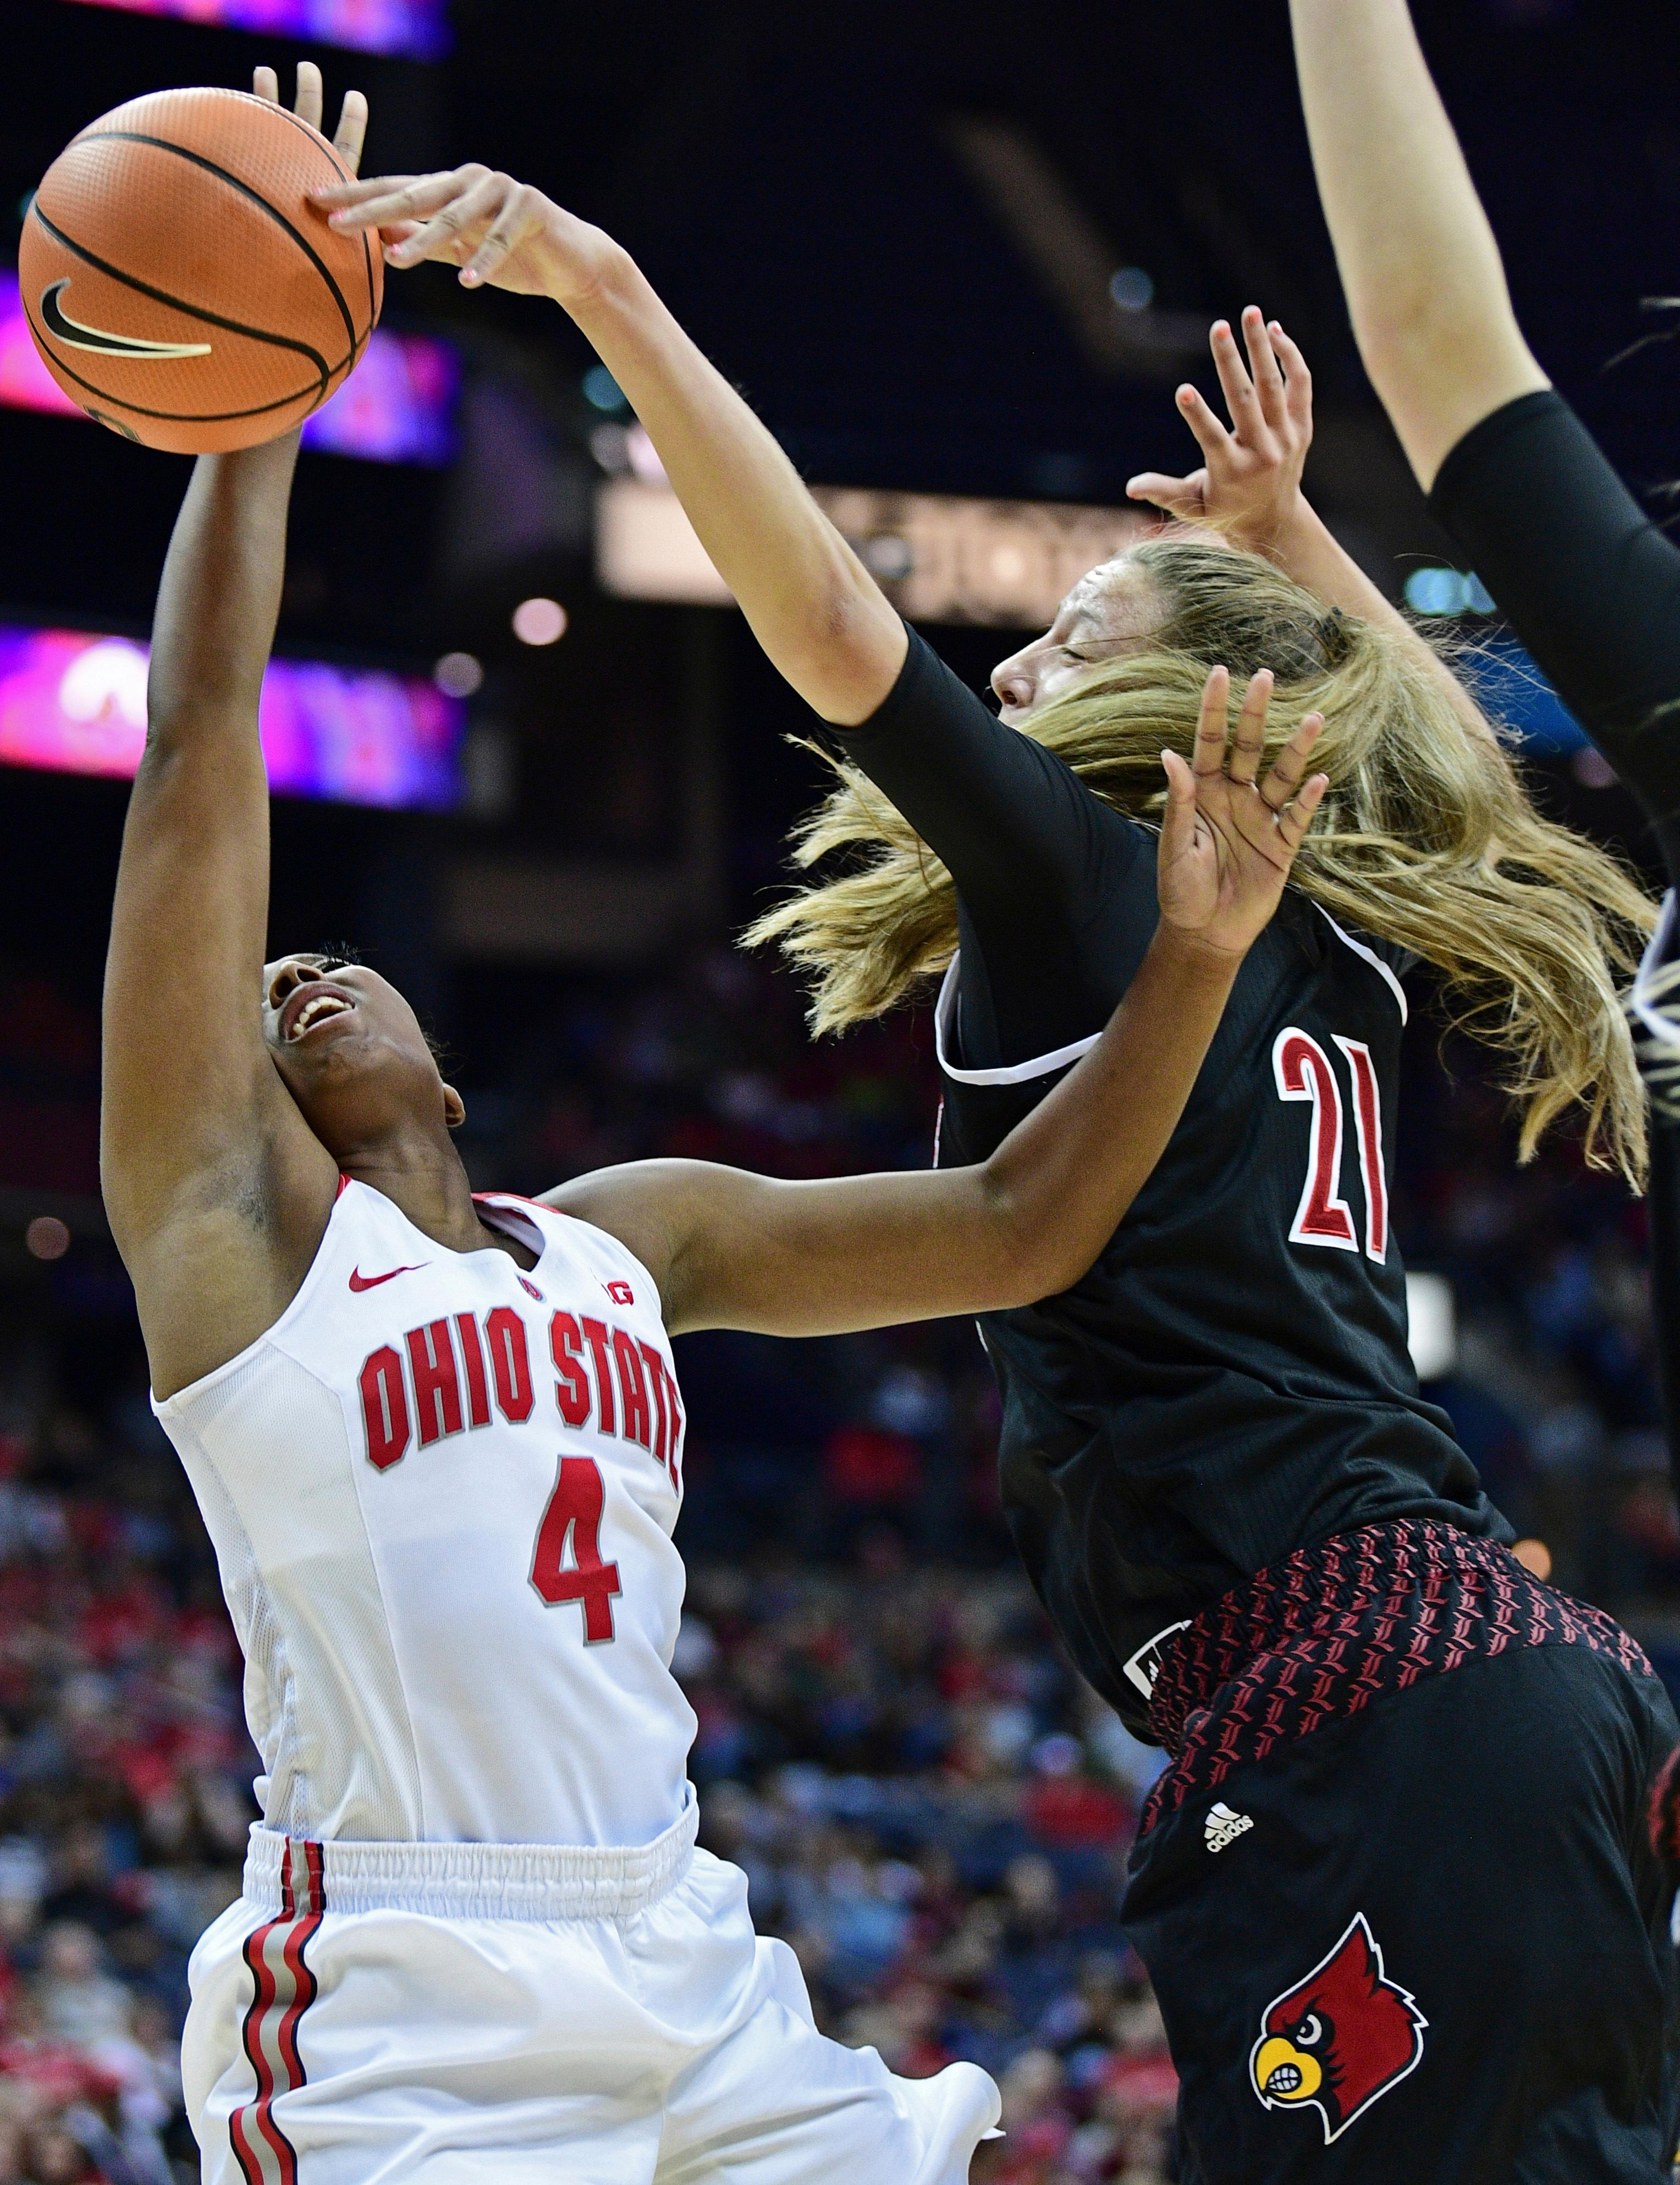 Louisville's Kylee Shook (21) blocks the shot of Ohio State's Sierra Calhoun during the second quarter of an NCAA college basketball game, Sunday, Nov. 12, 2017, in Columbus, Ohio. (AP Photo/David Dermer)